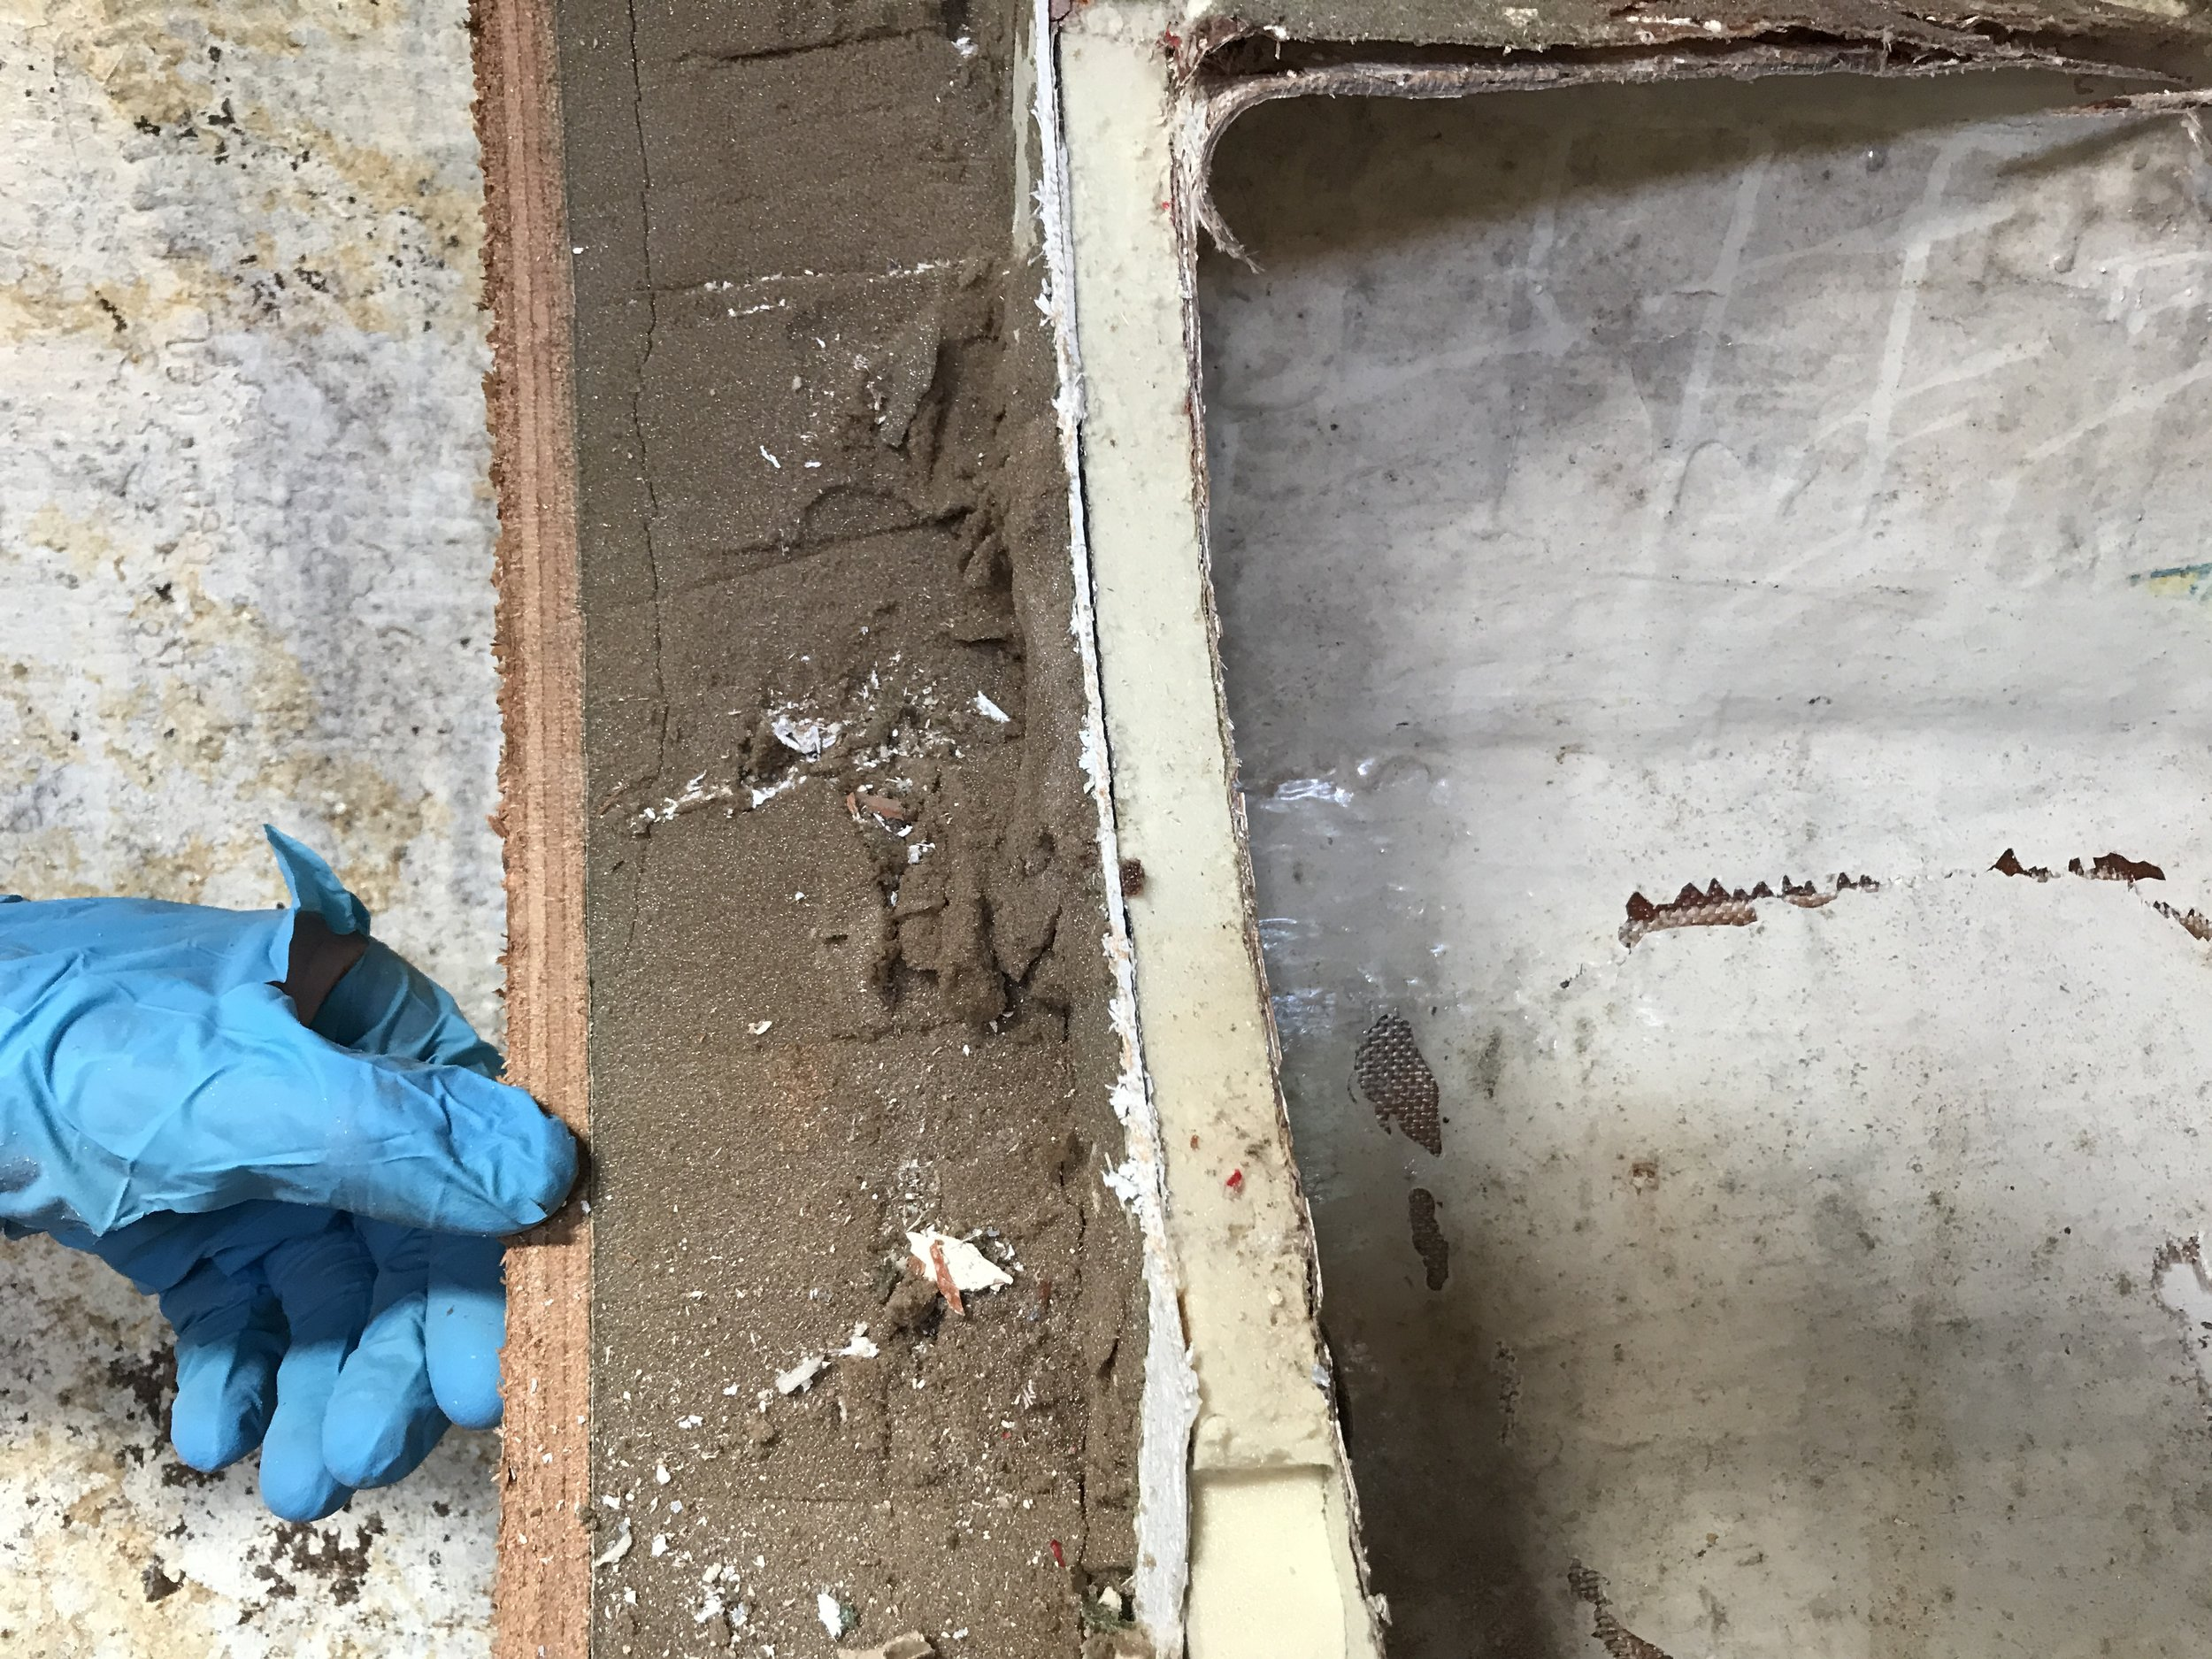 Old foam insulation (that sandy, dirty looking stuff) on the left.